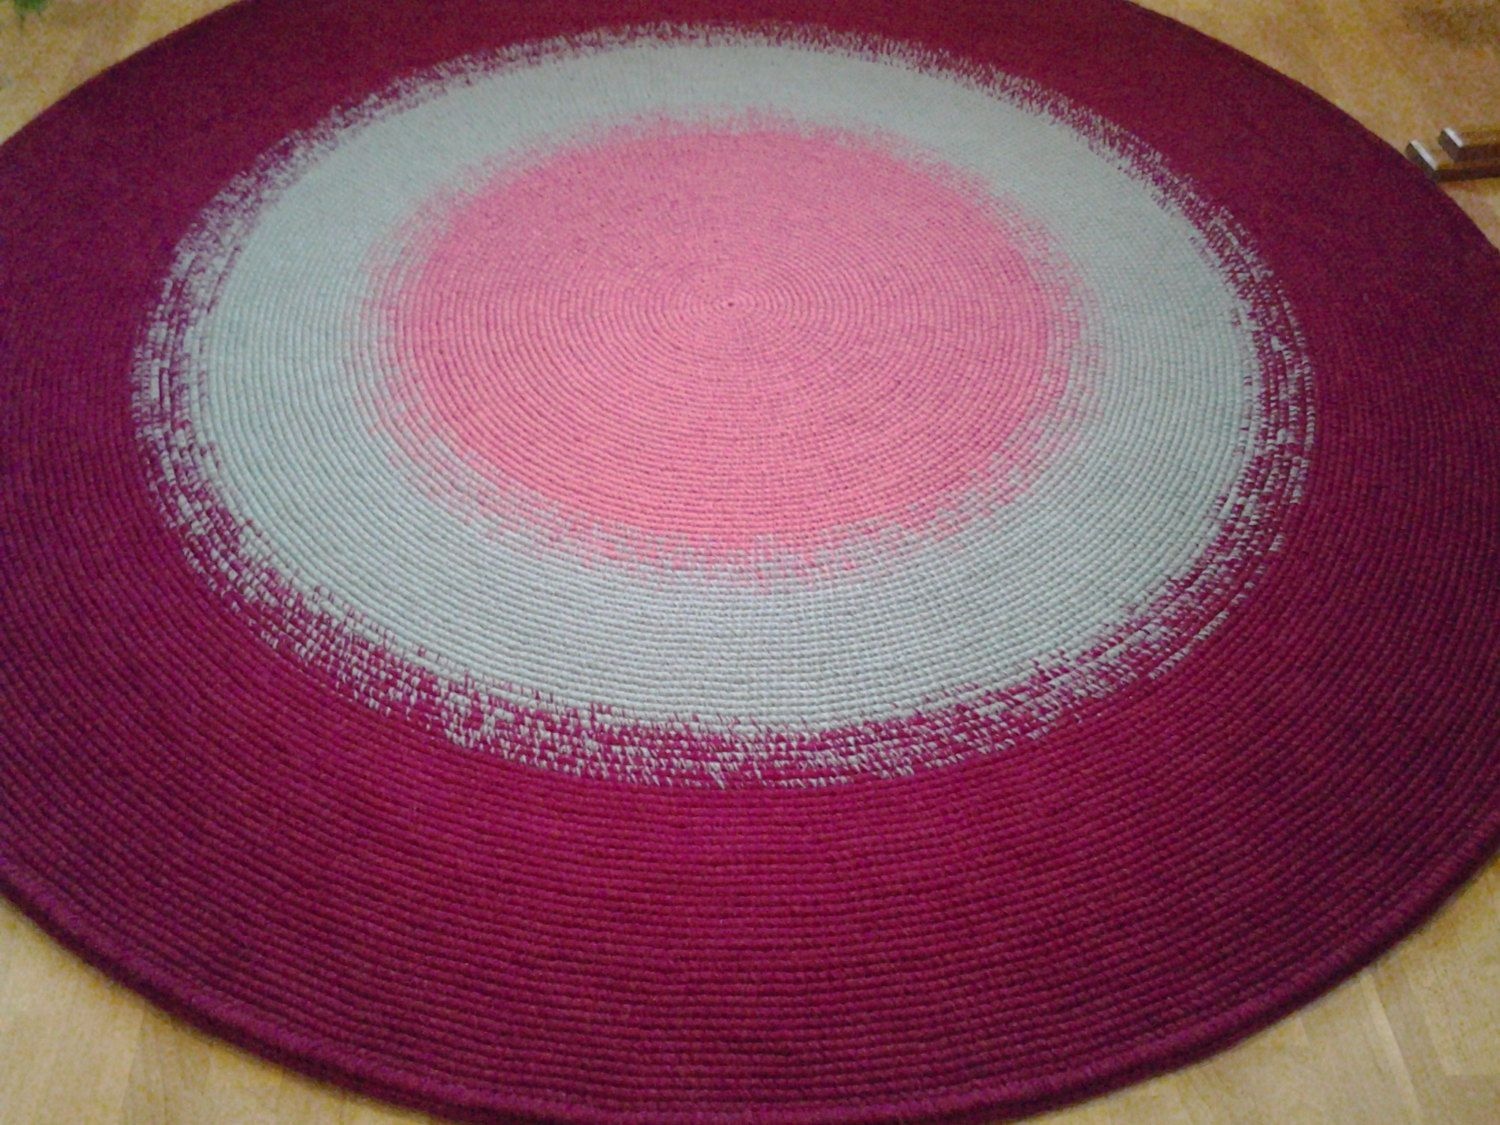 Round rug/80,7'' (205 cm)/Rugs/Rug/Area Rugs/Floor Rugs/Large Rugs/Handmade Rug/Carpet/Wool Rug by AnuszkaDesign on Etsy